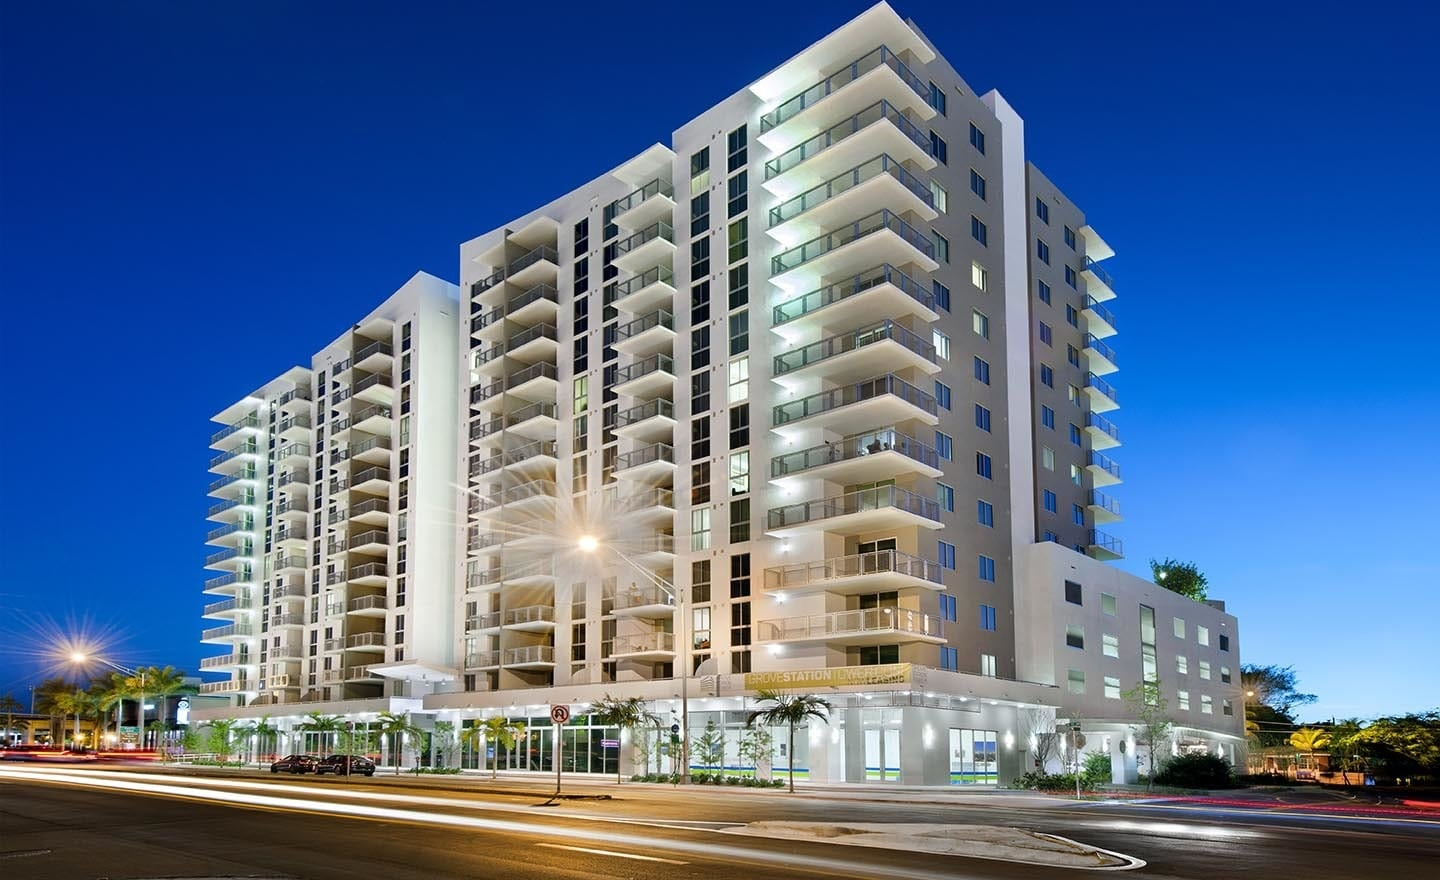 What is free sale, for example apartments